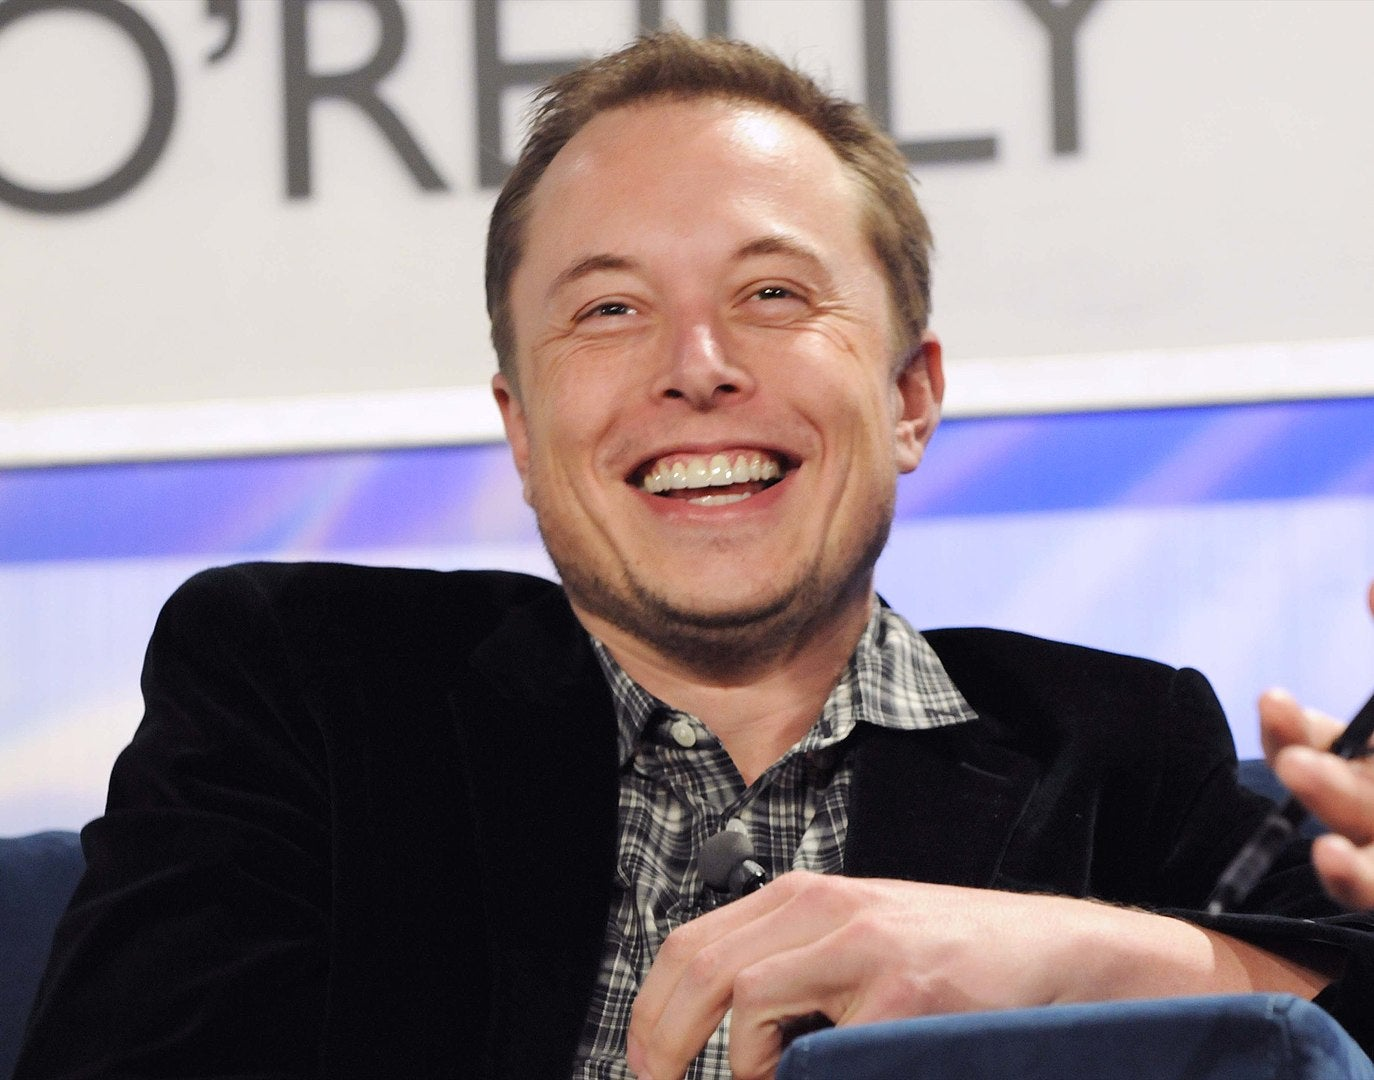 According To Elon Musk Skills Matter More Than Degrees Here's Why